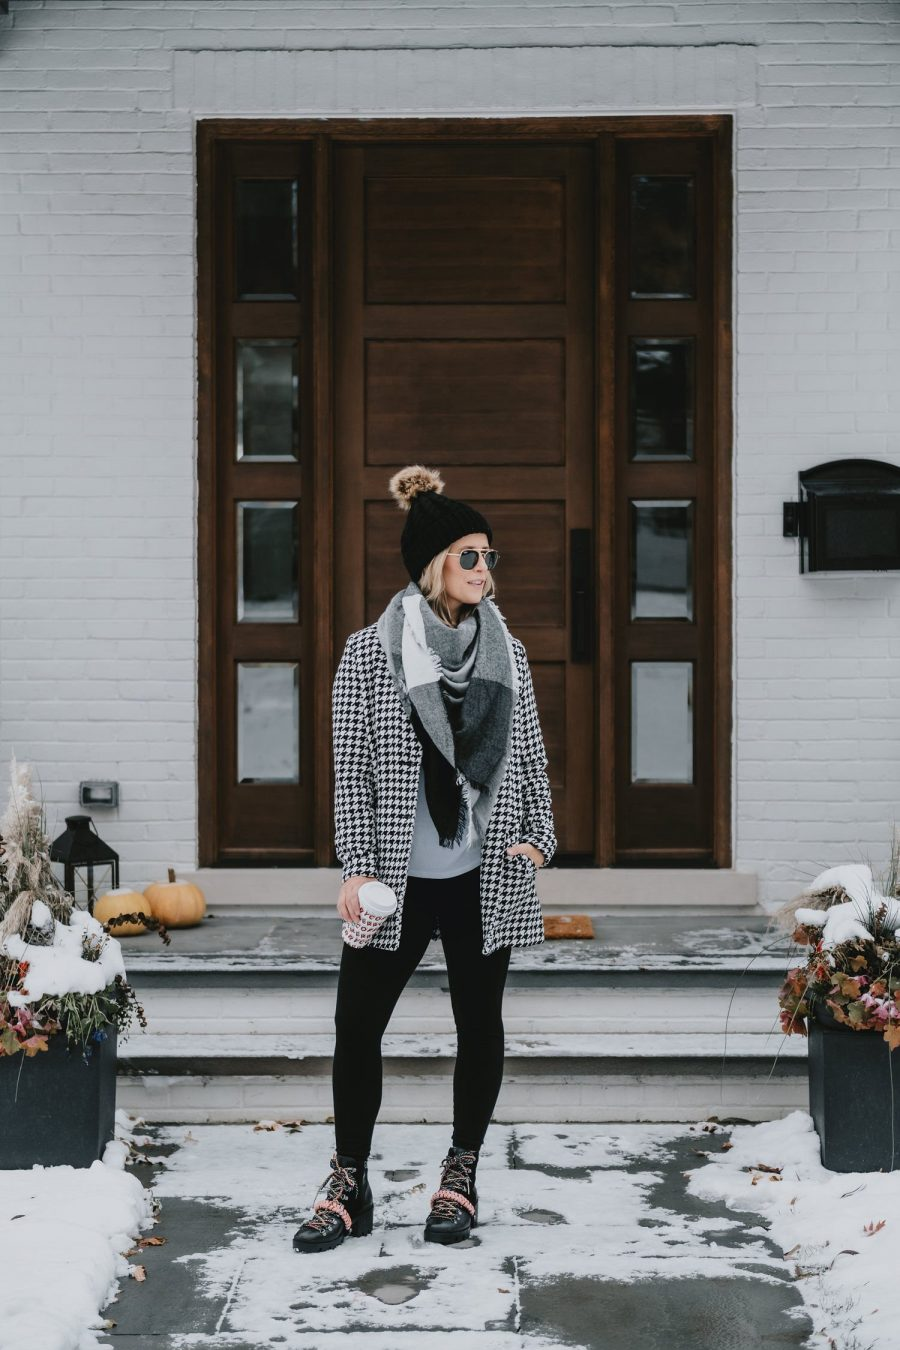 Early Black Friday Sales + My $30 Houndstooth Coat